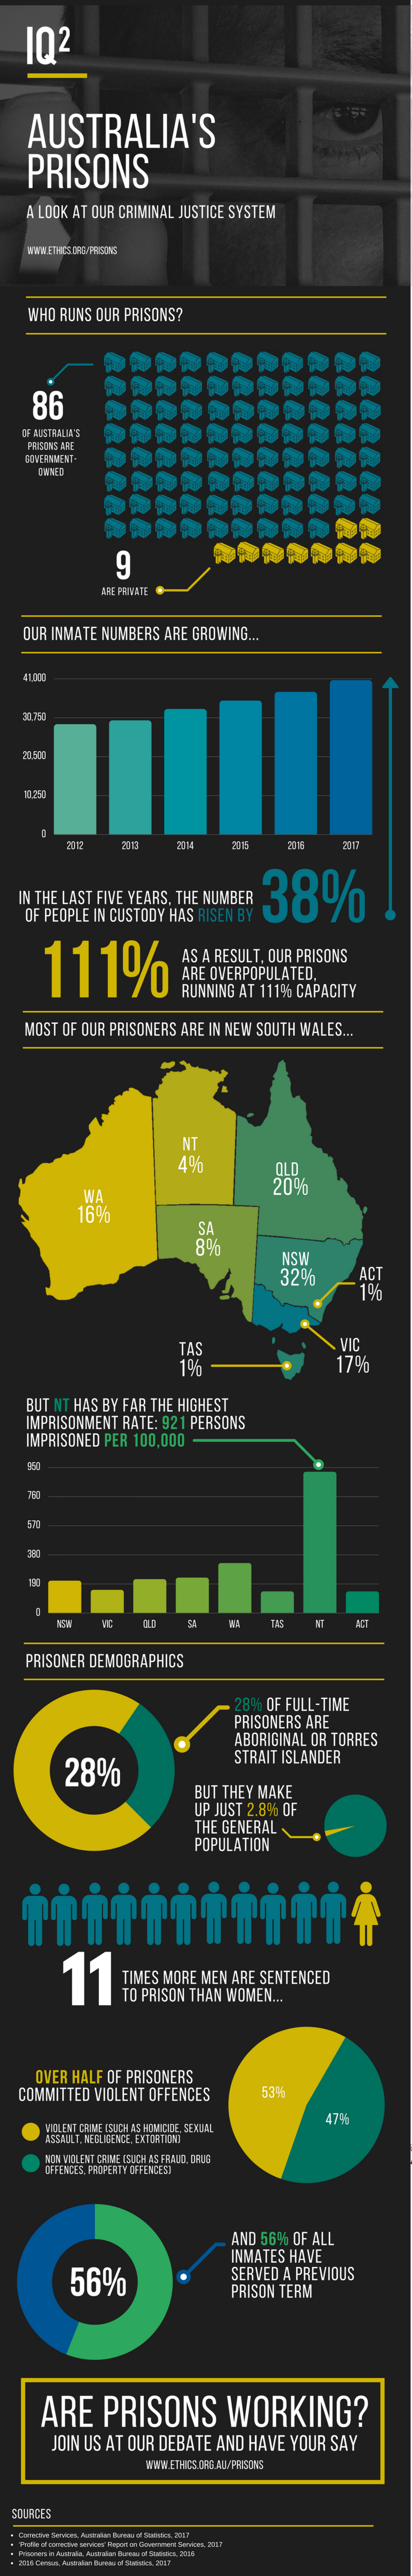 The Australian Prison System Infographic